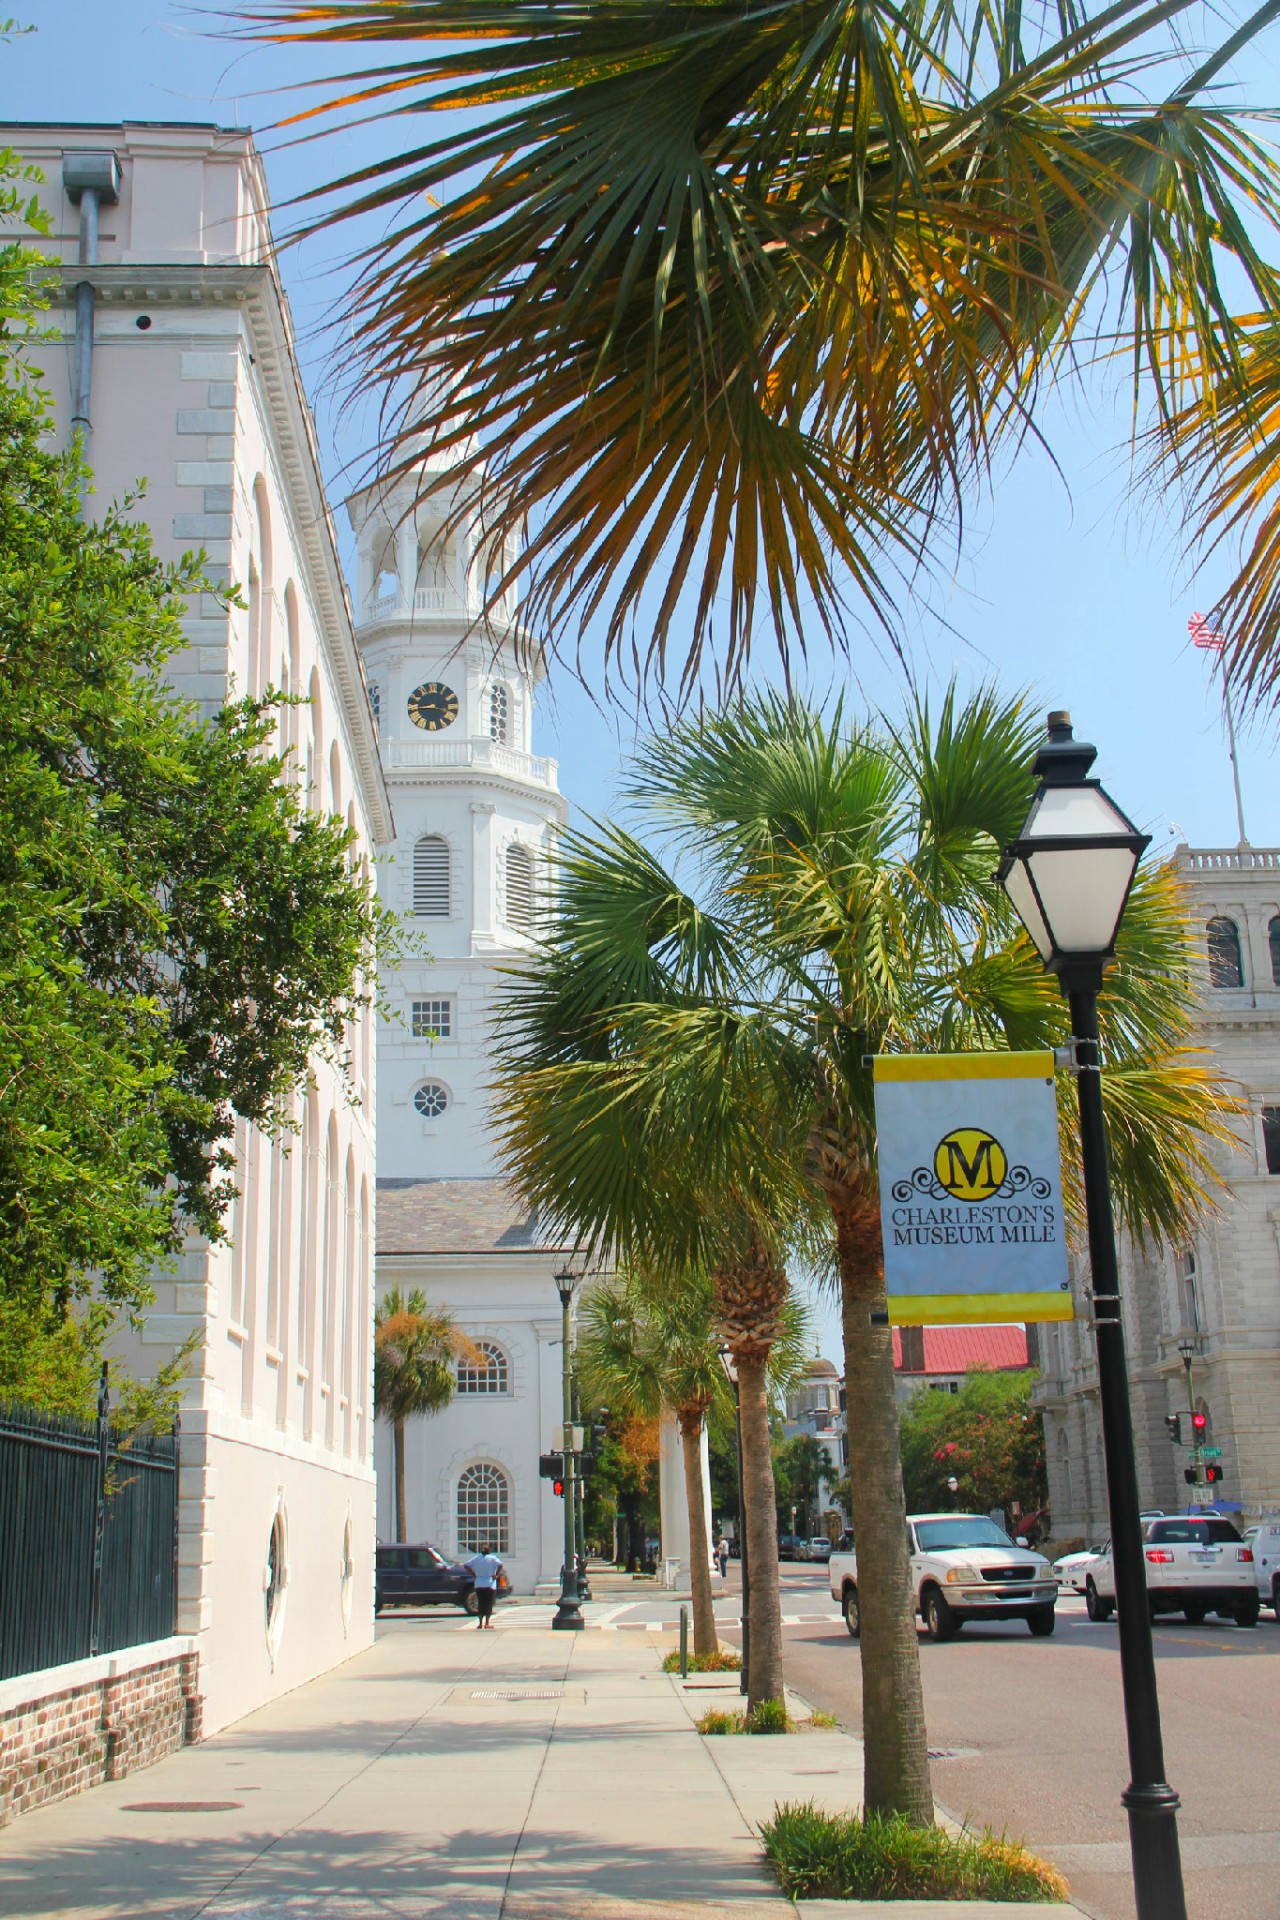 Etats-Unis: Le charme secret de Charleston…